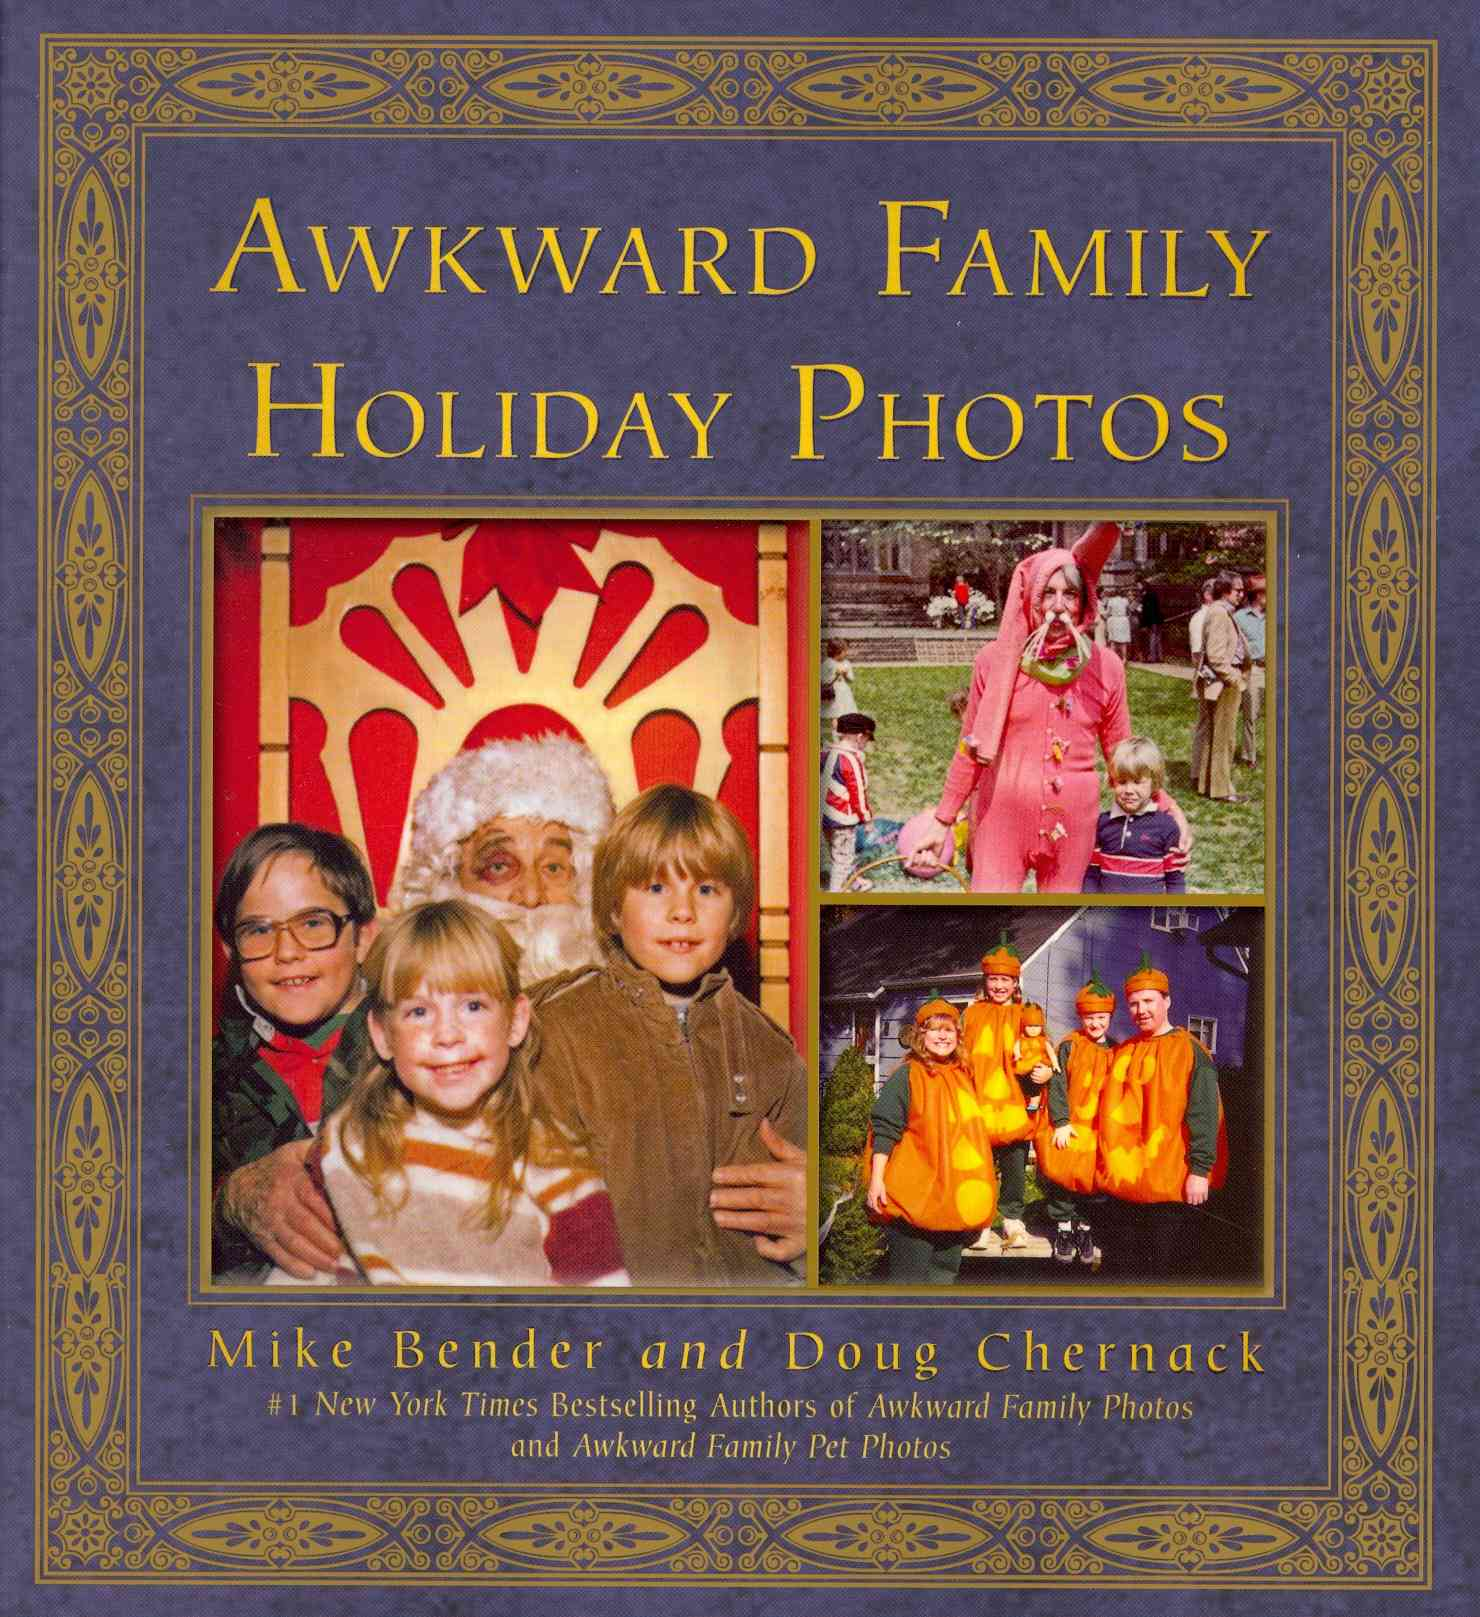 Awkward Family Holiday Photos By Bender, Mike/ Chernack, Doug